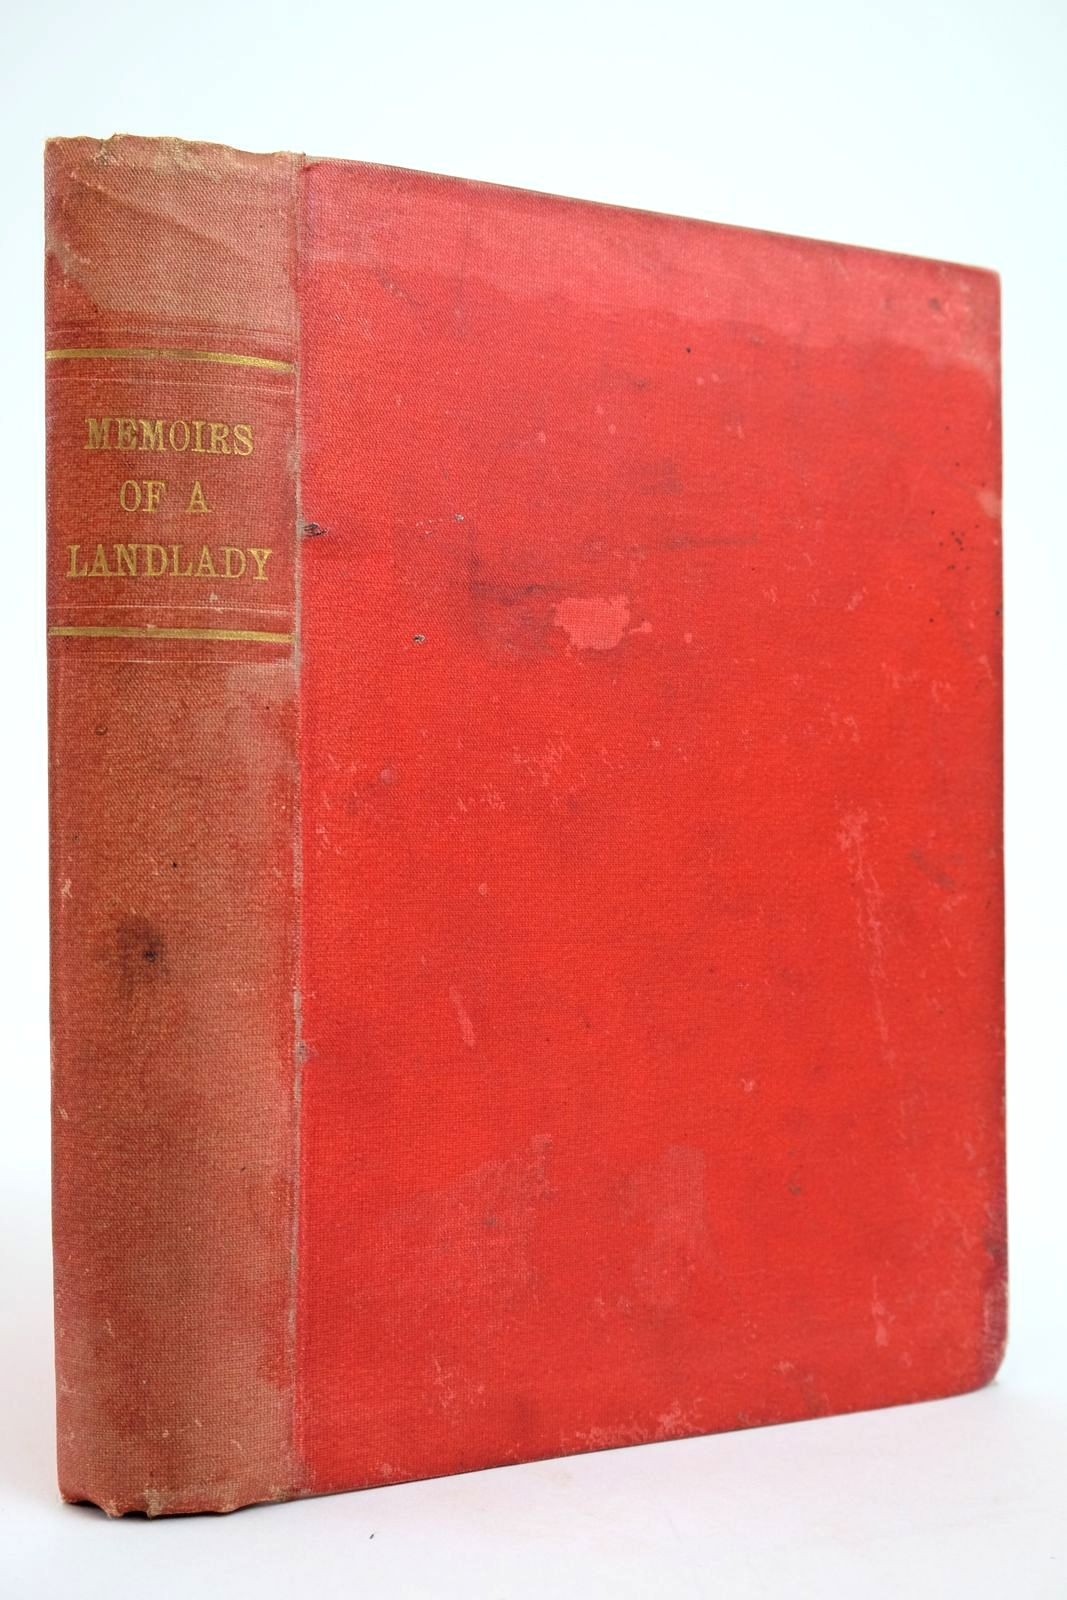 Photo of MEMOIRS OF A LANDLADY- Stock Number: 2135014